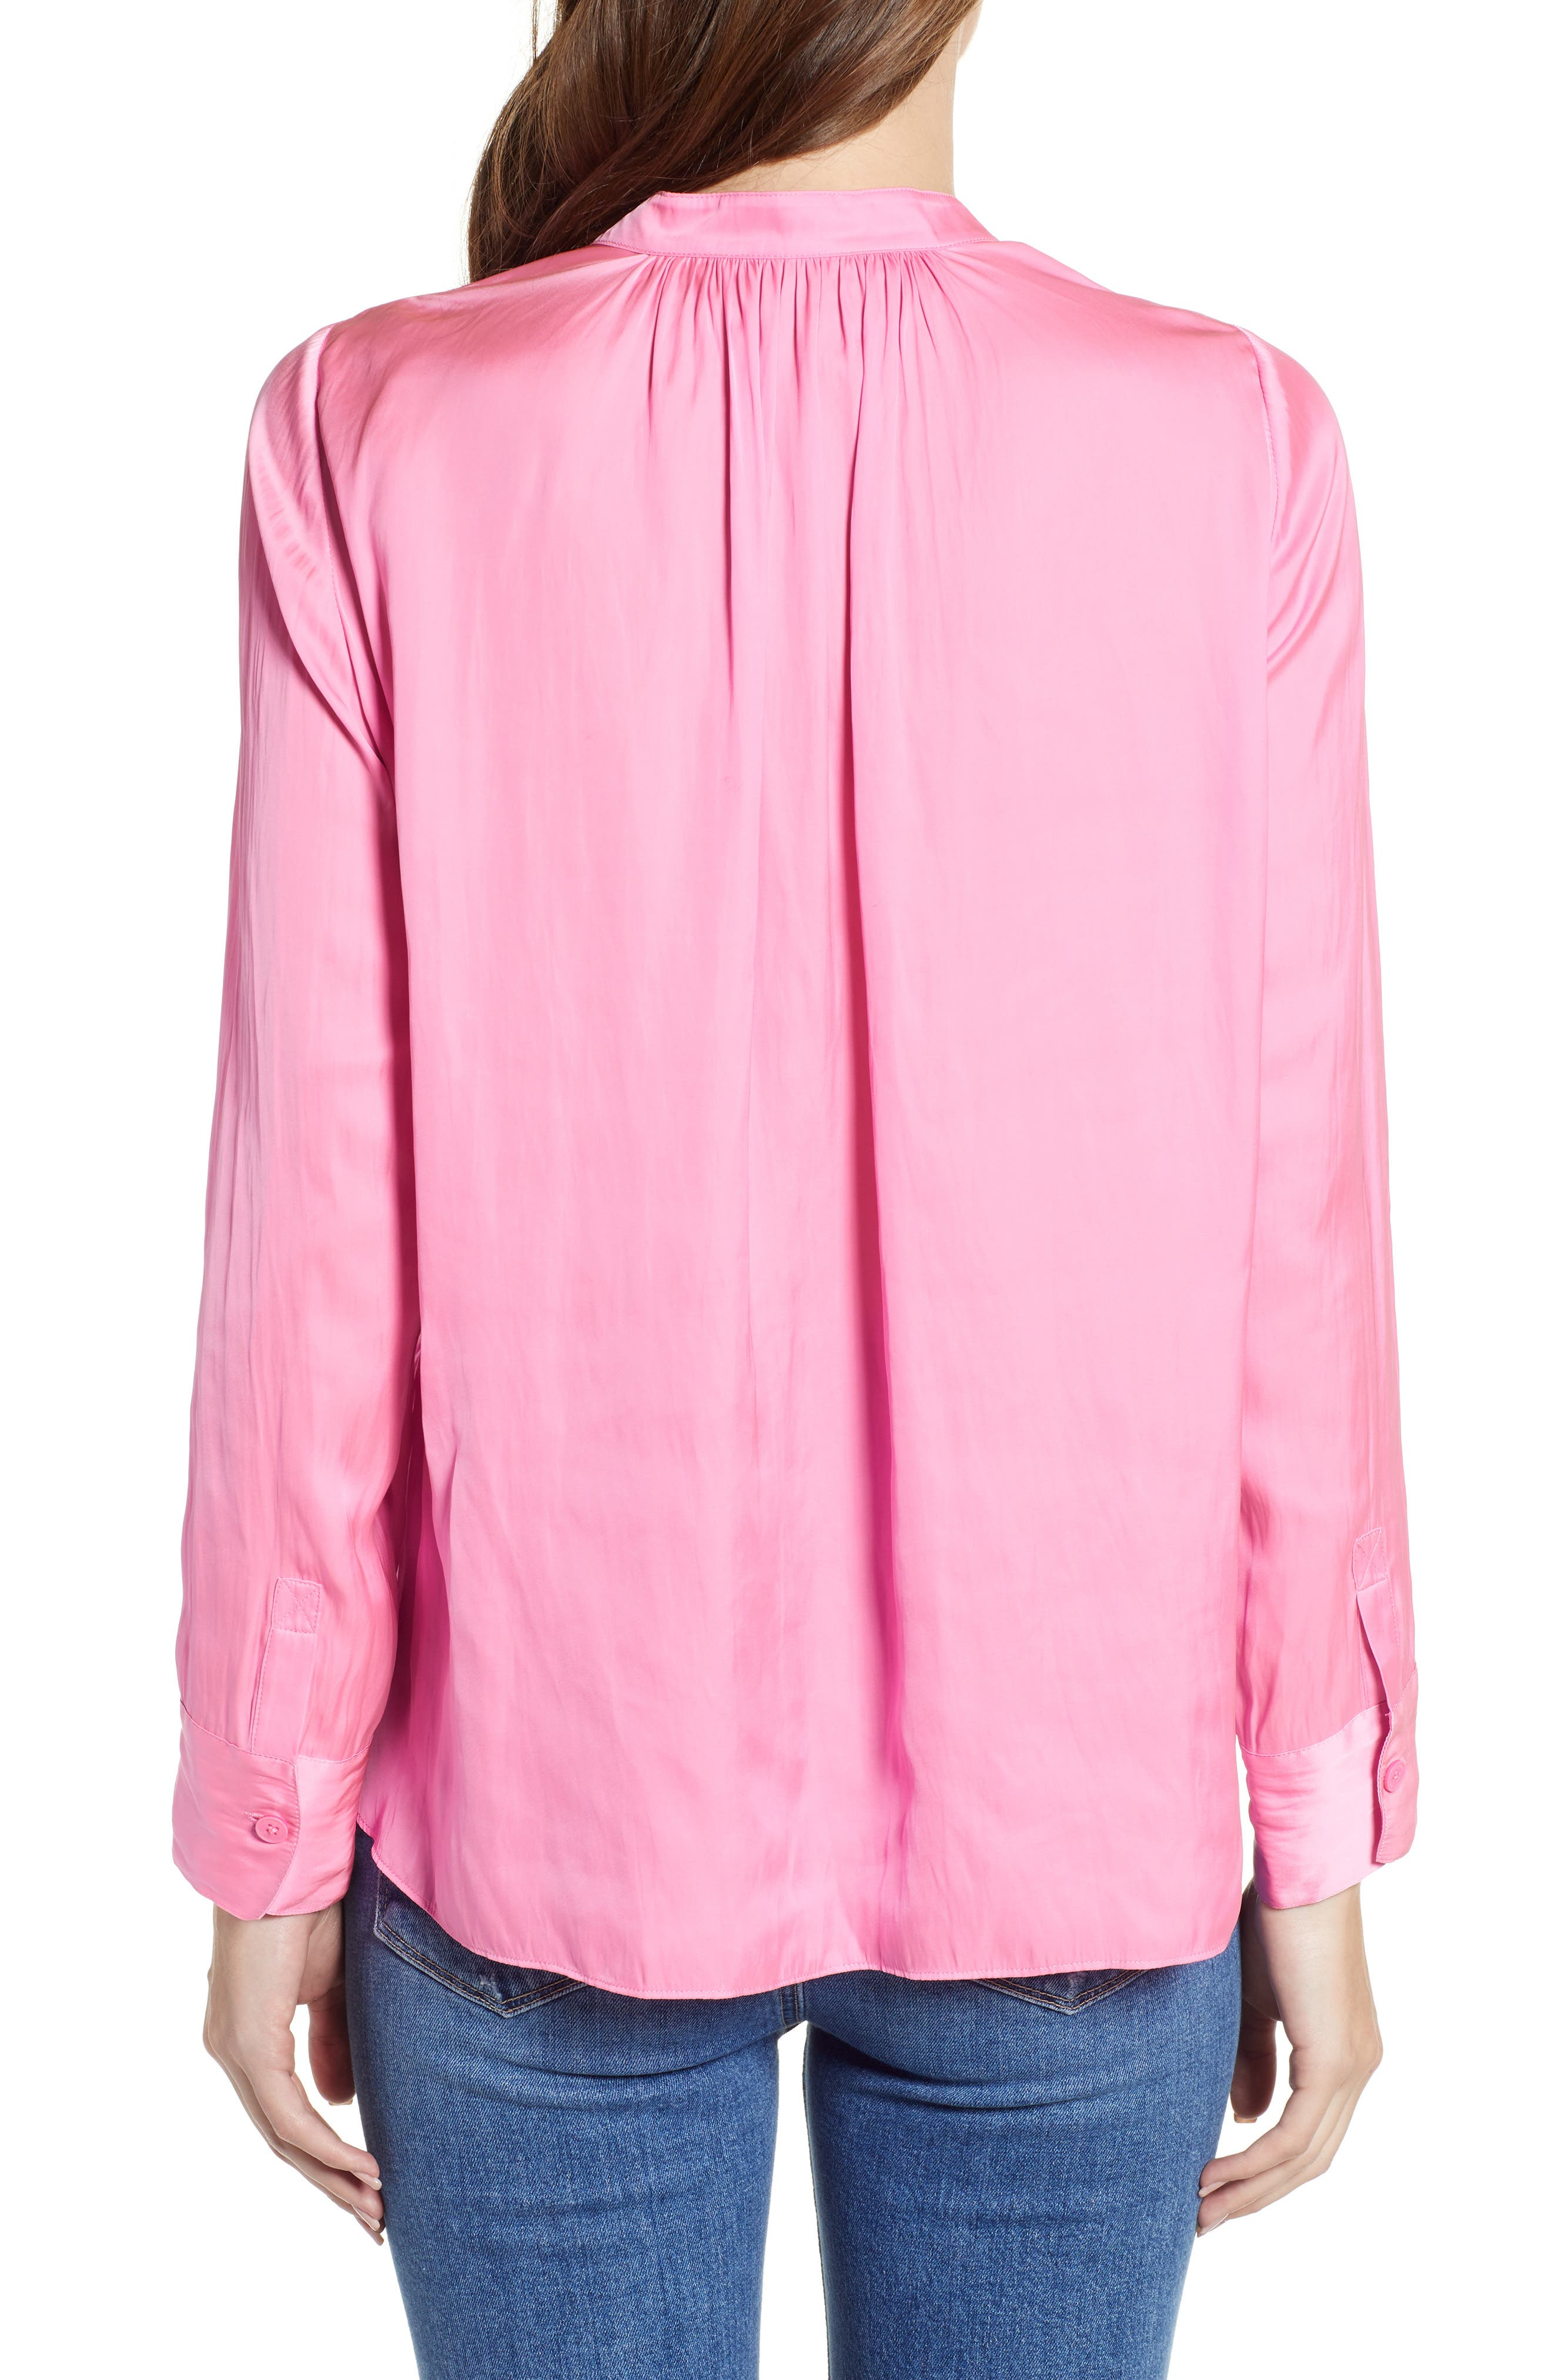 Zadig & Volaire Tink Blouse,                             Alternate thumbnail 2, color,                             688